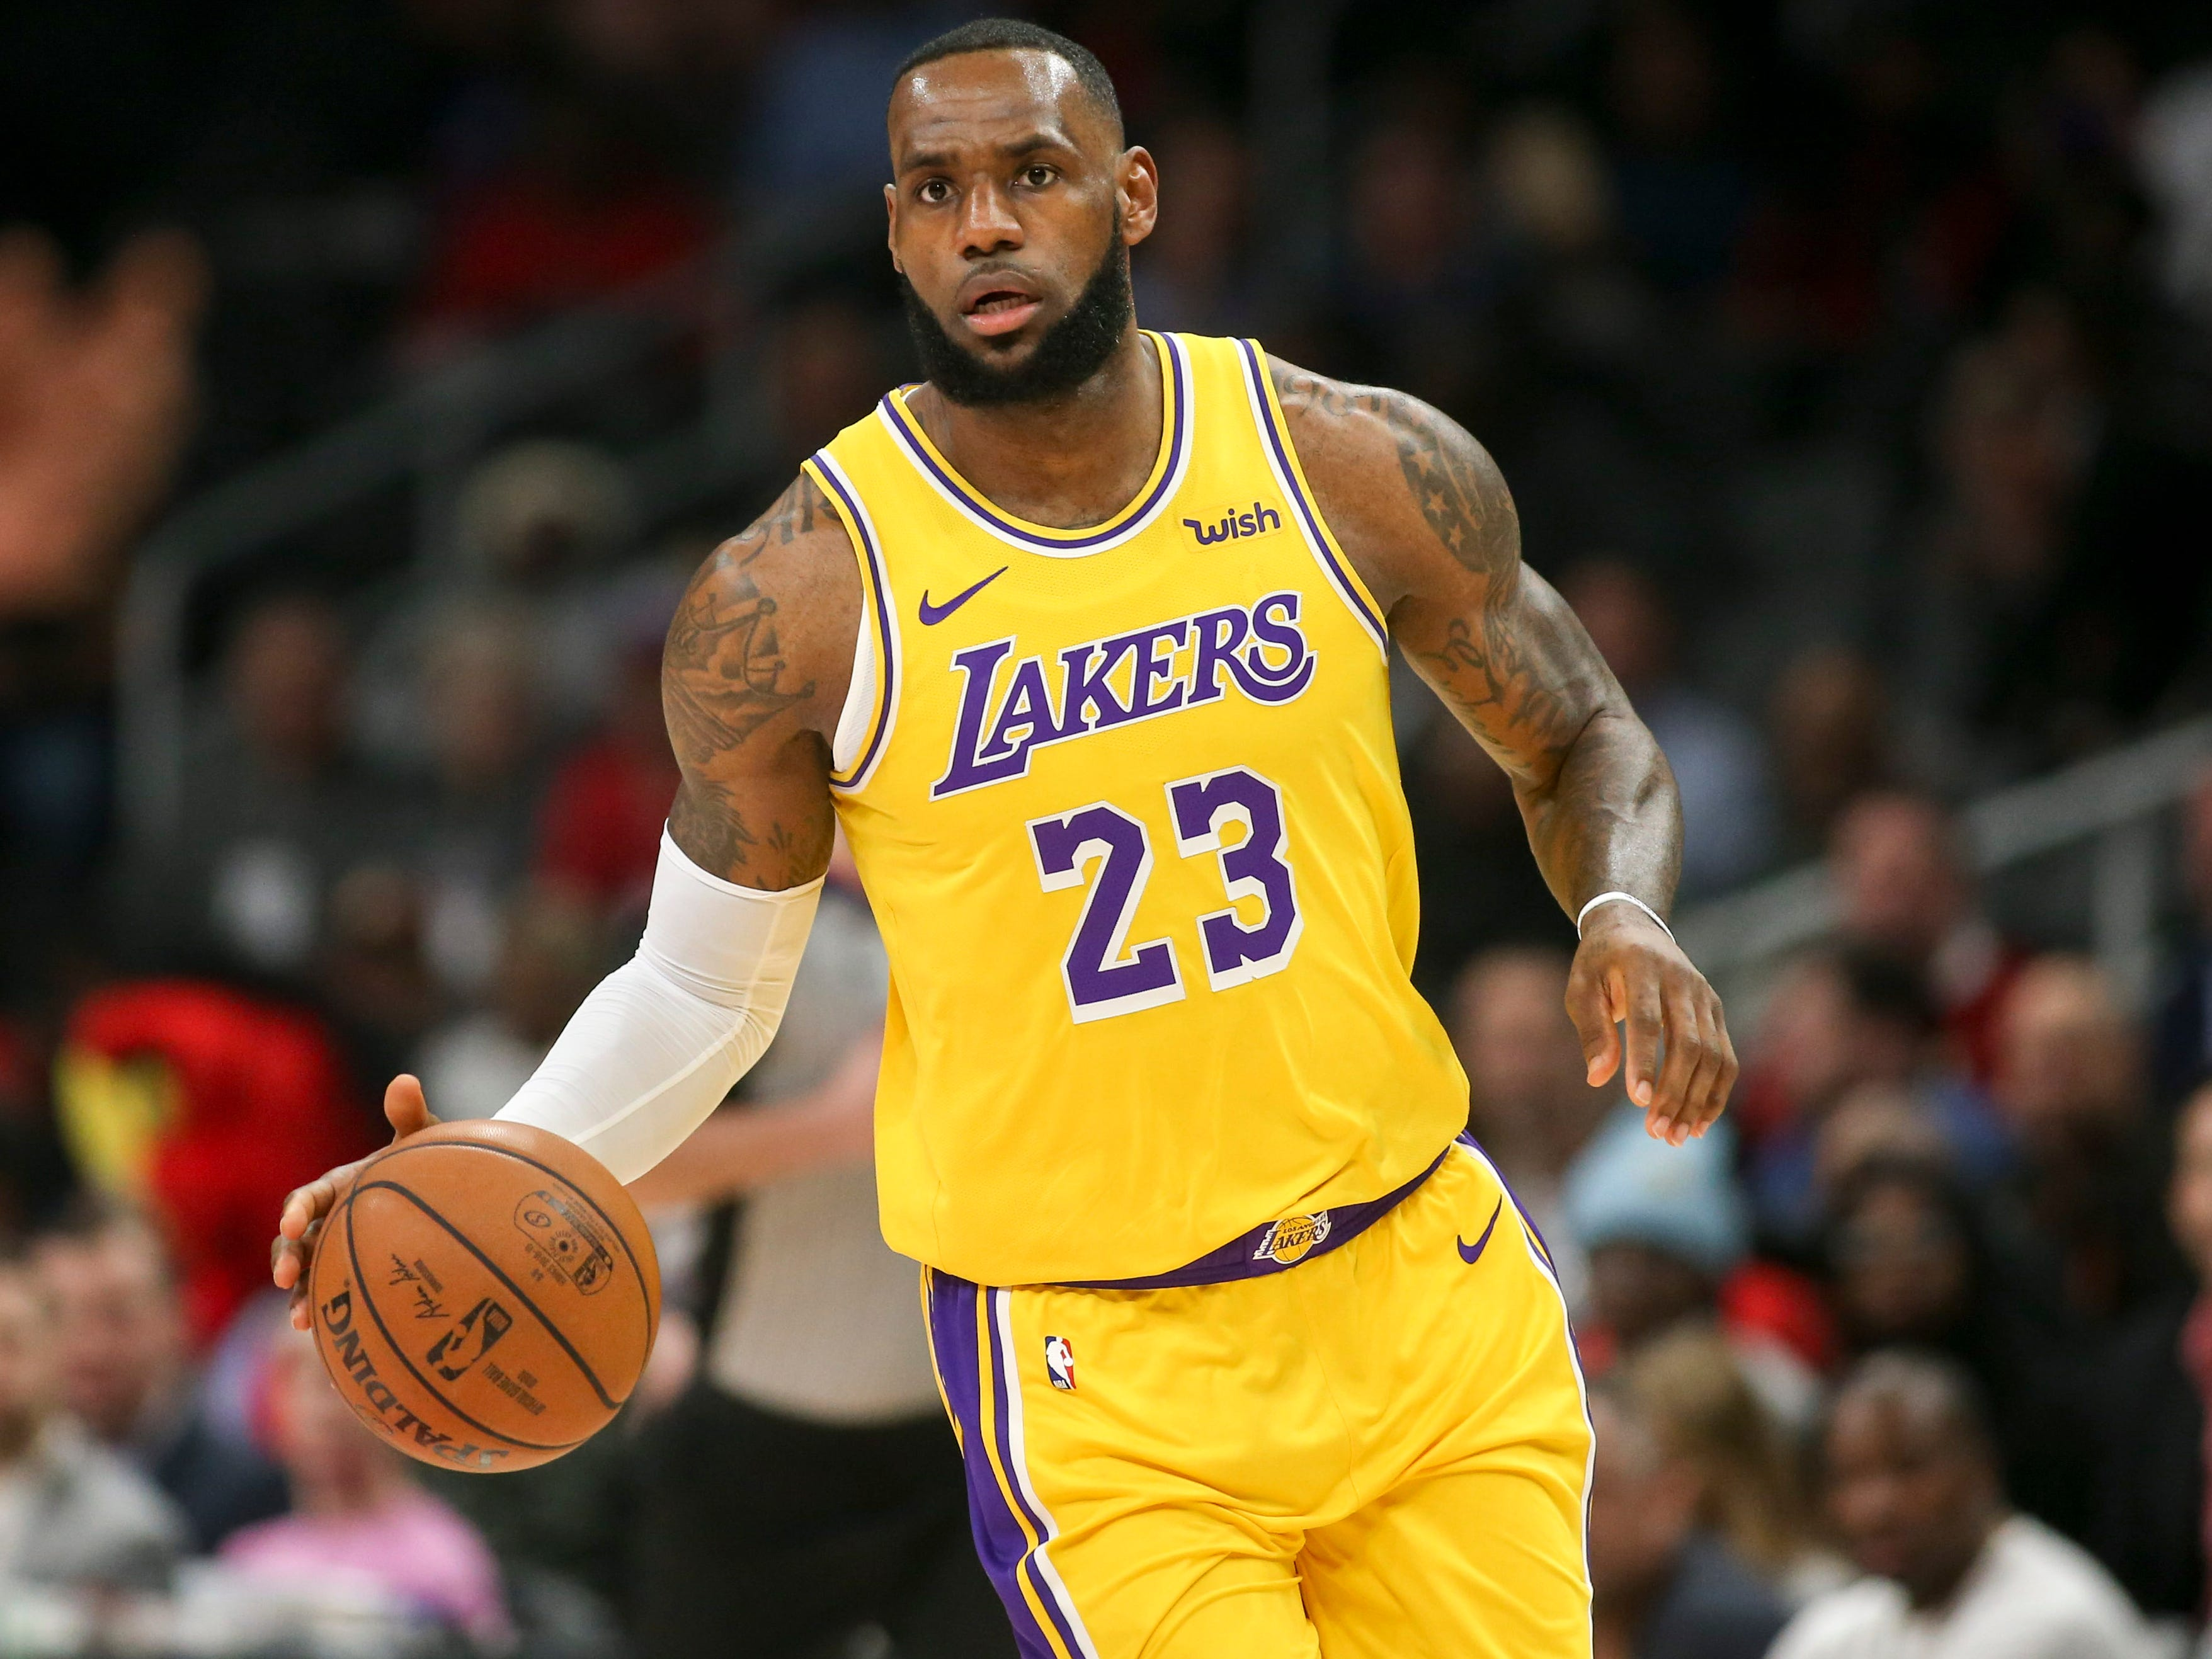 82. LeBron James, Lakers (Feb. 12): 28 points, 16 assists, 11 rebounds in 117-113 loss to Hawks (fifth of season).